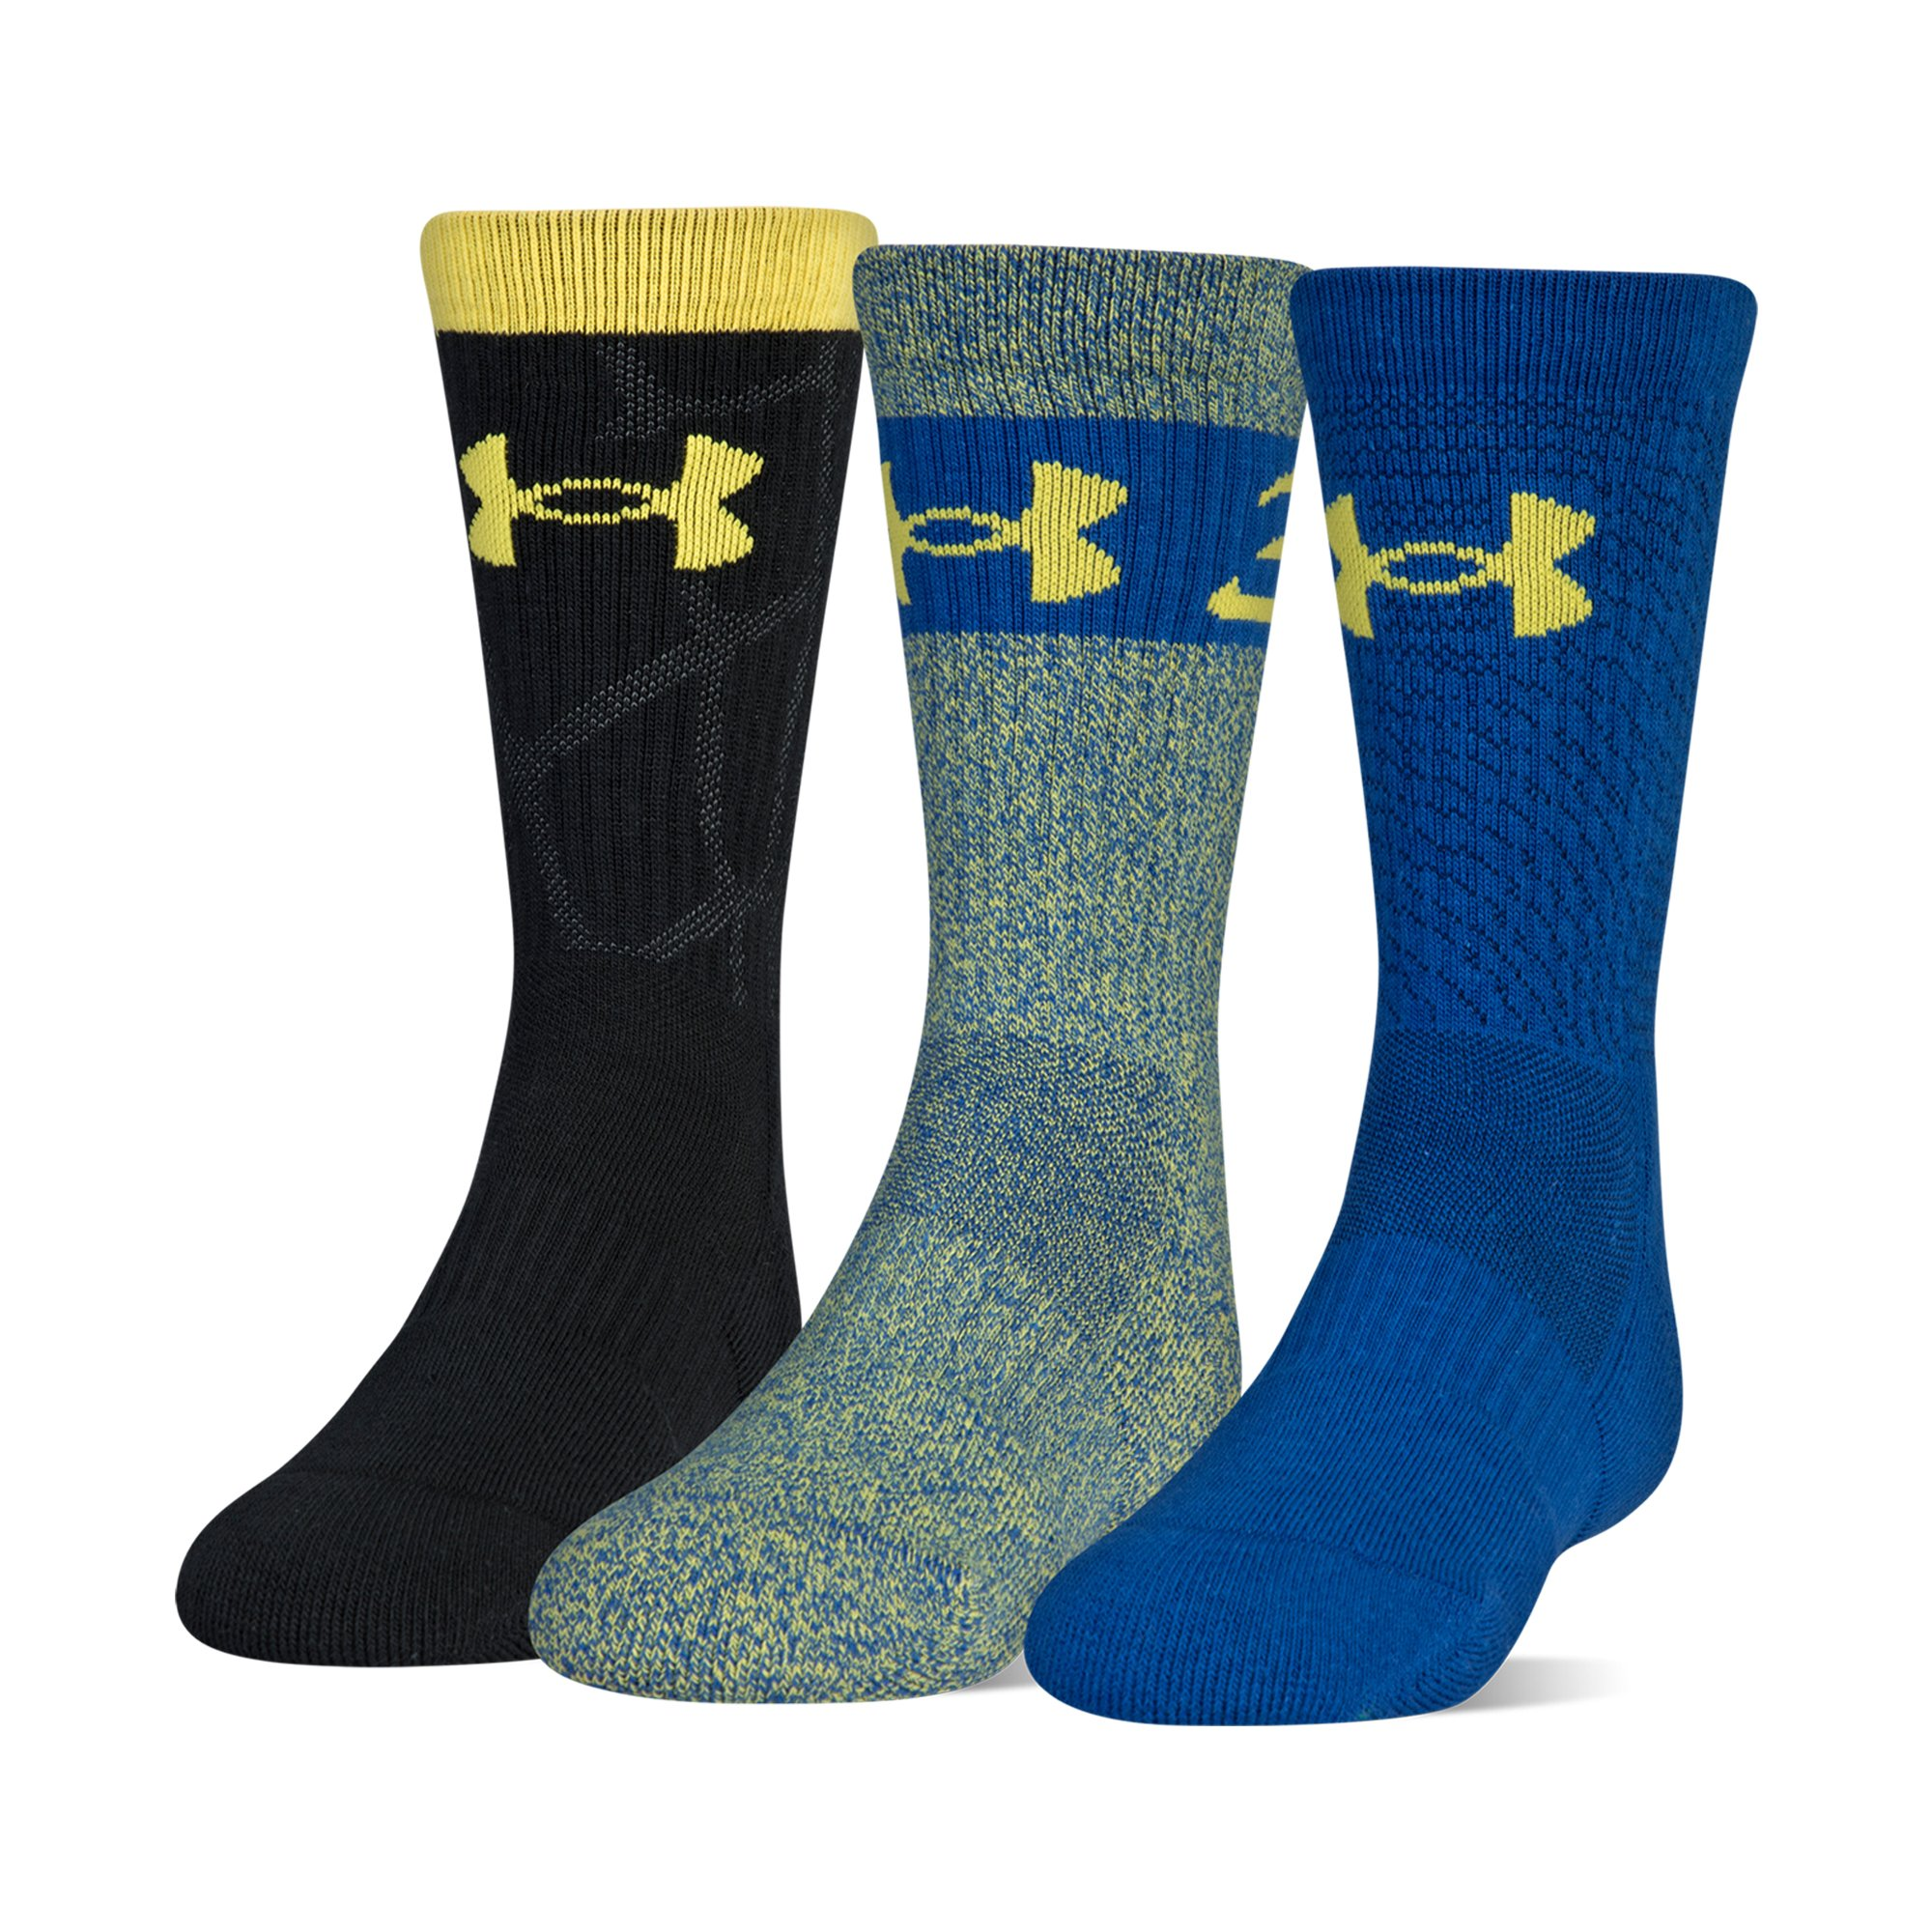 Under Armour Phenom Sc30 2.0 Crew Socks, 3 Pairs, Royal Assorted, Youth Large by Under Armour